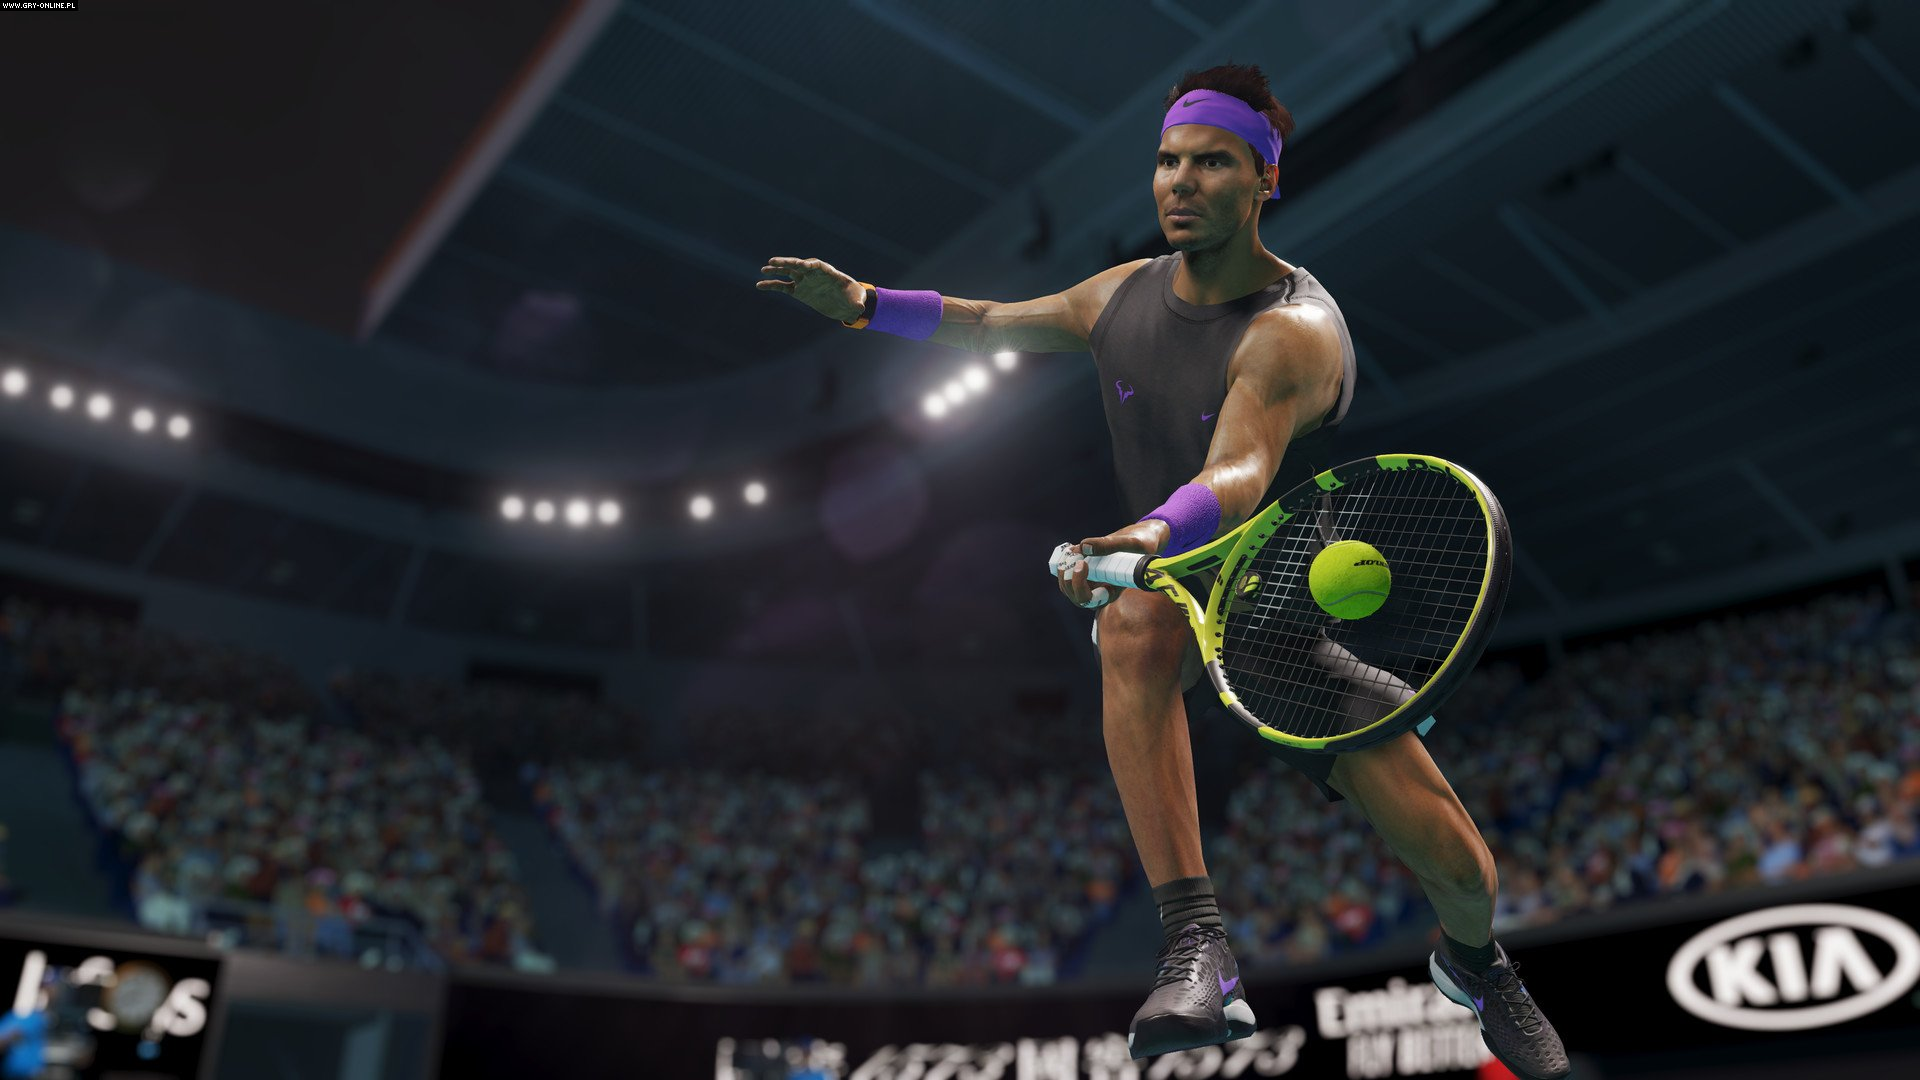 AO Tennis 2 PC, PS4, XONE, Switch Games Image 5/9, Big Ant Studios, Bigben Interactive